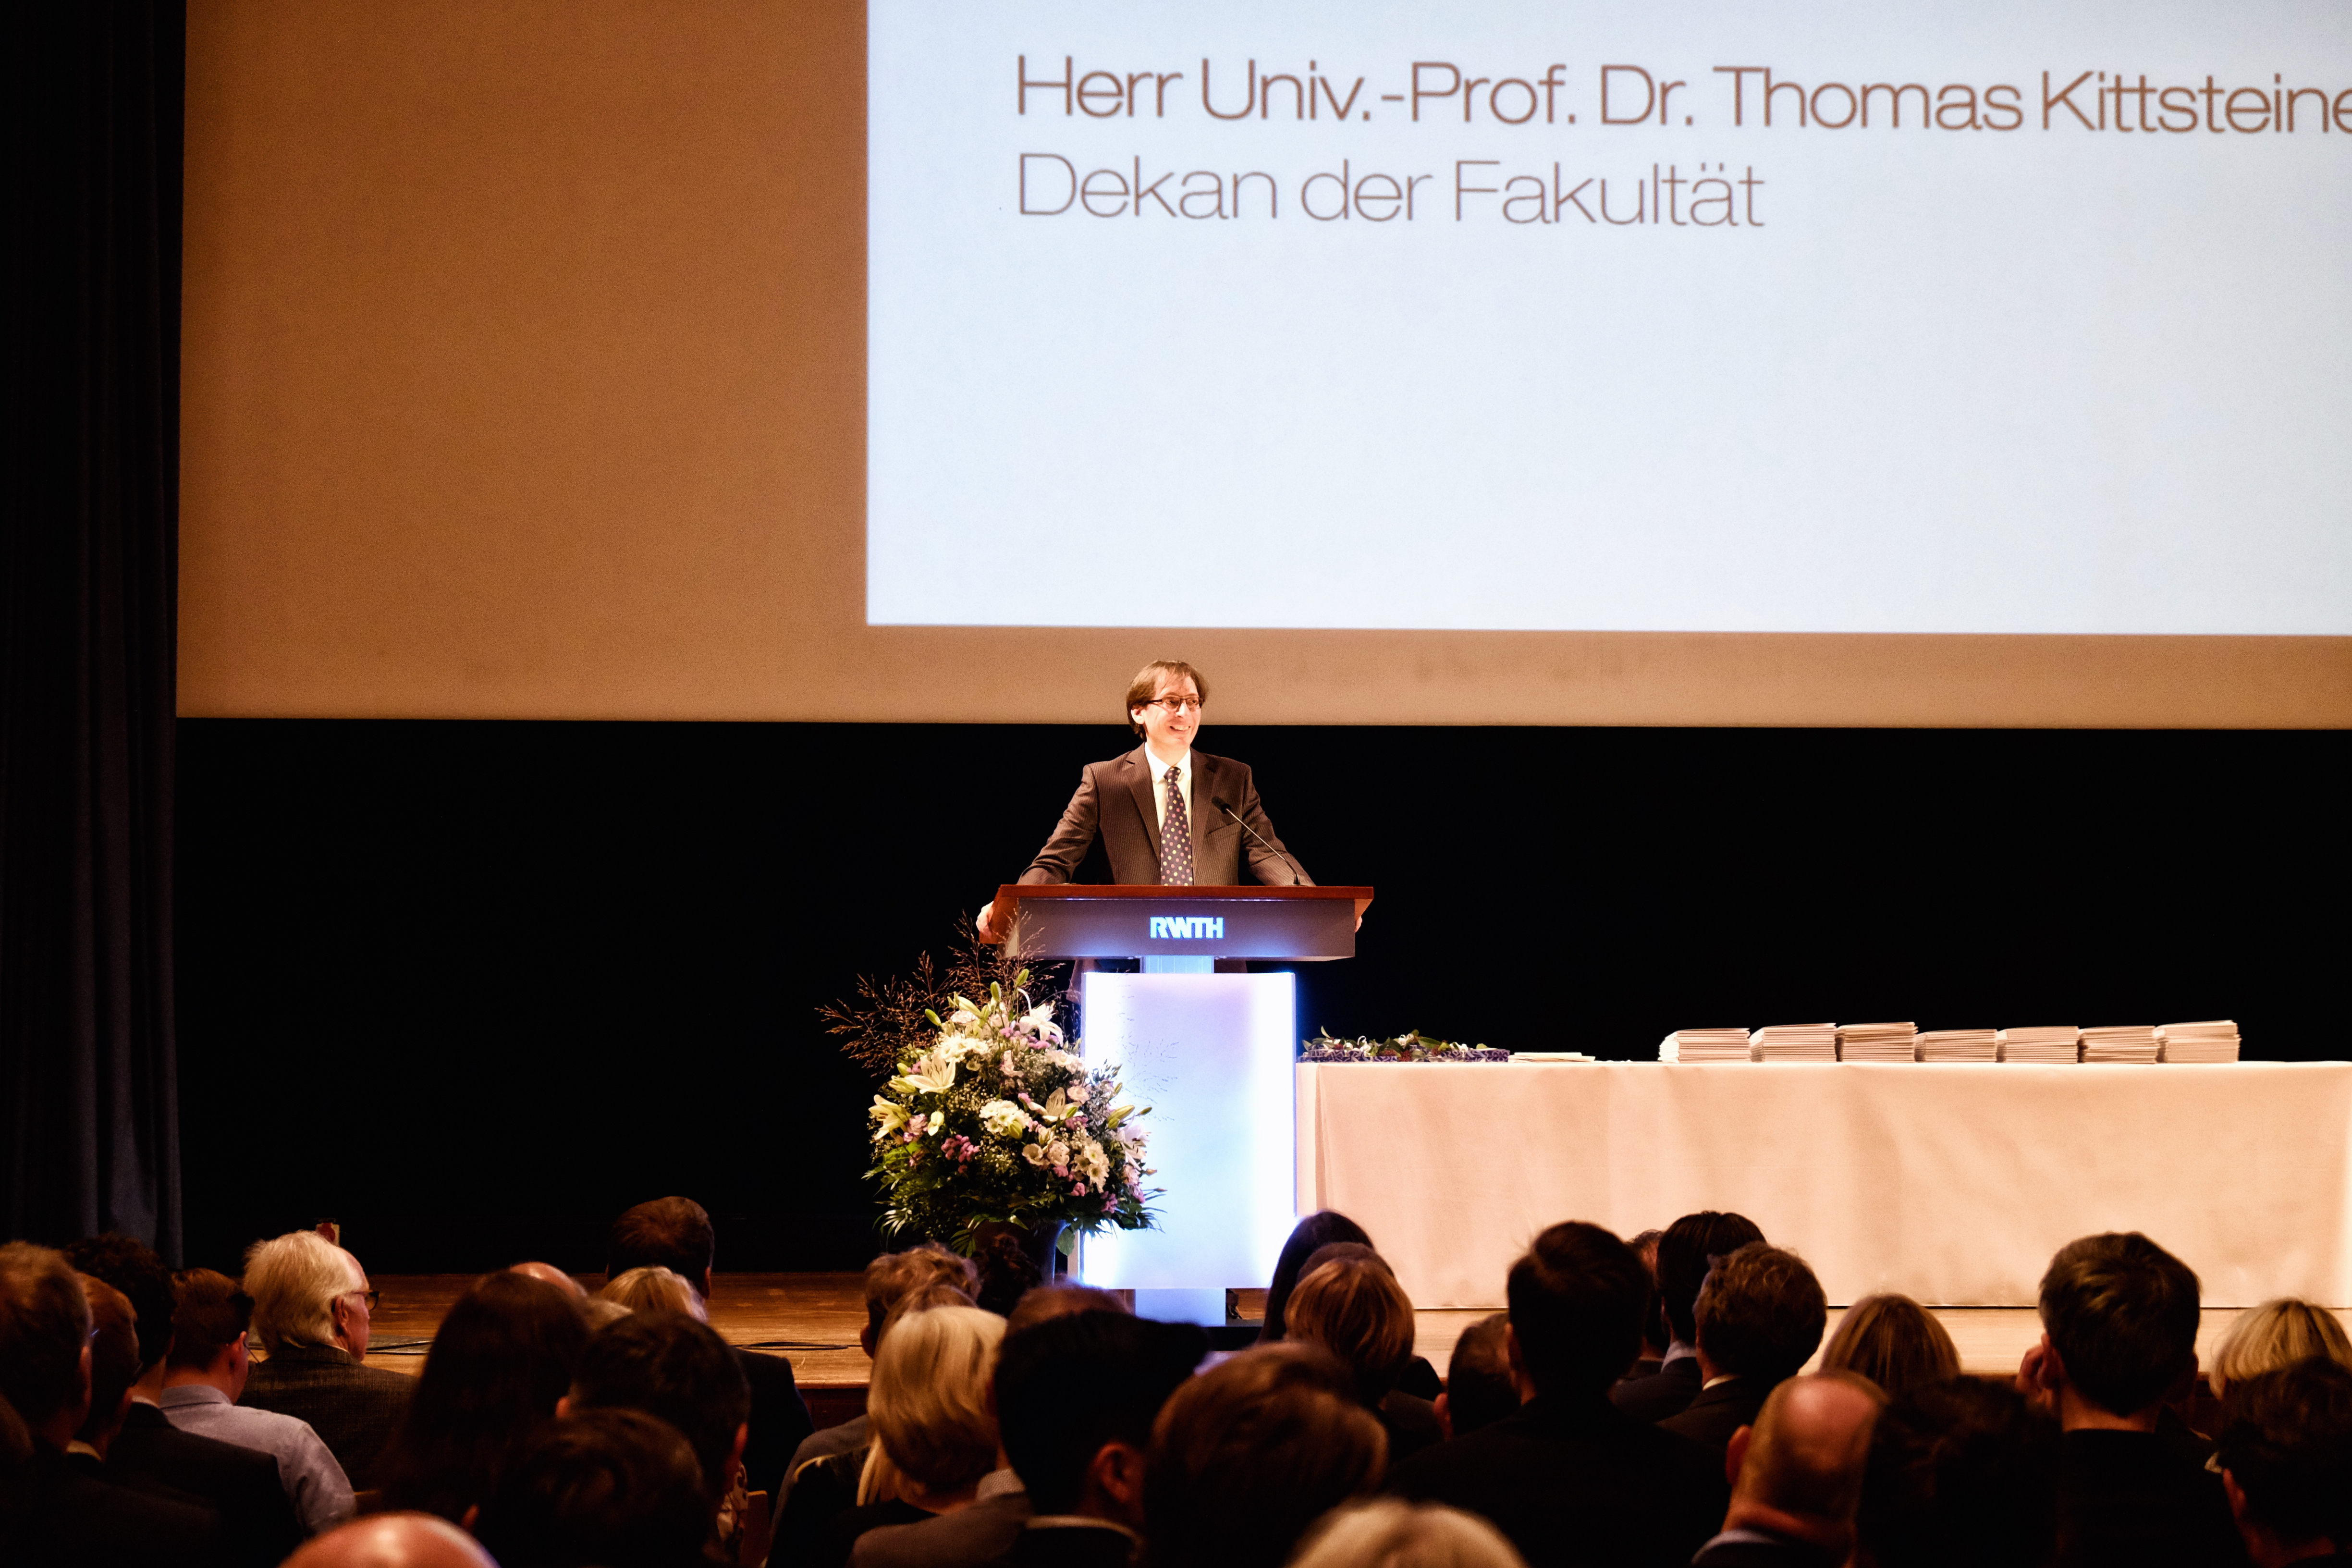 Prof. Thomas Kittsteiner, Dean of the School